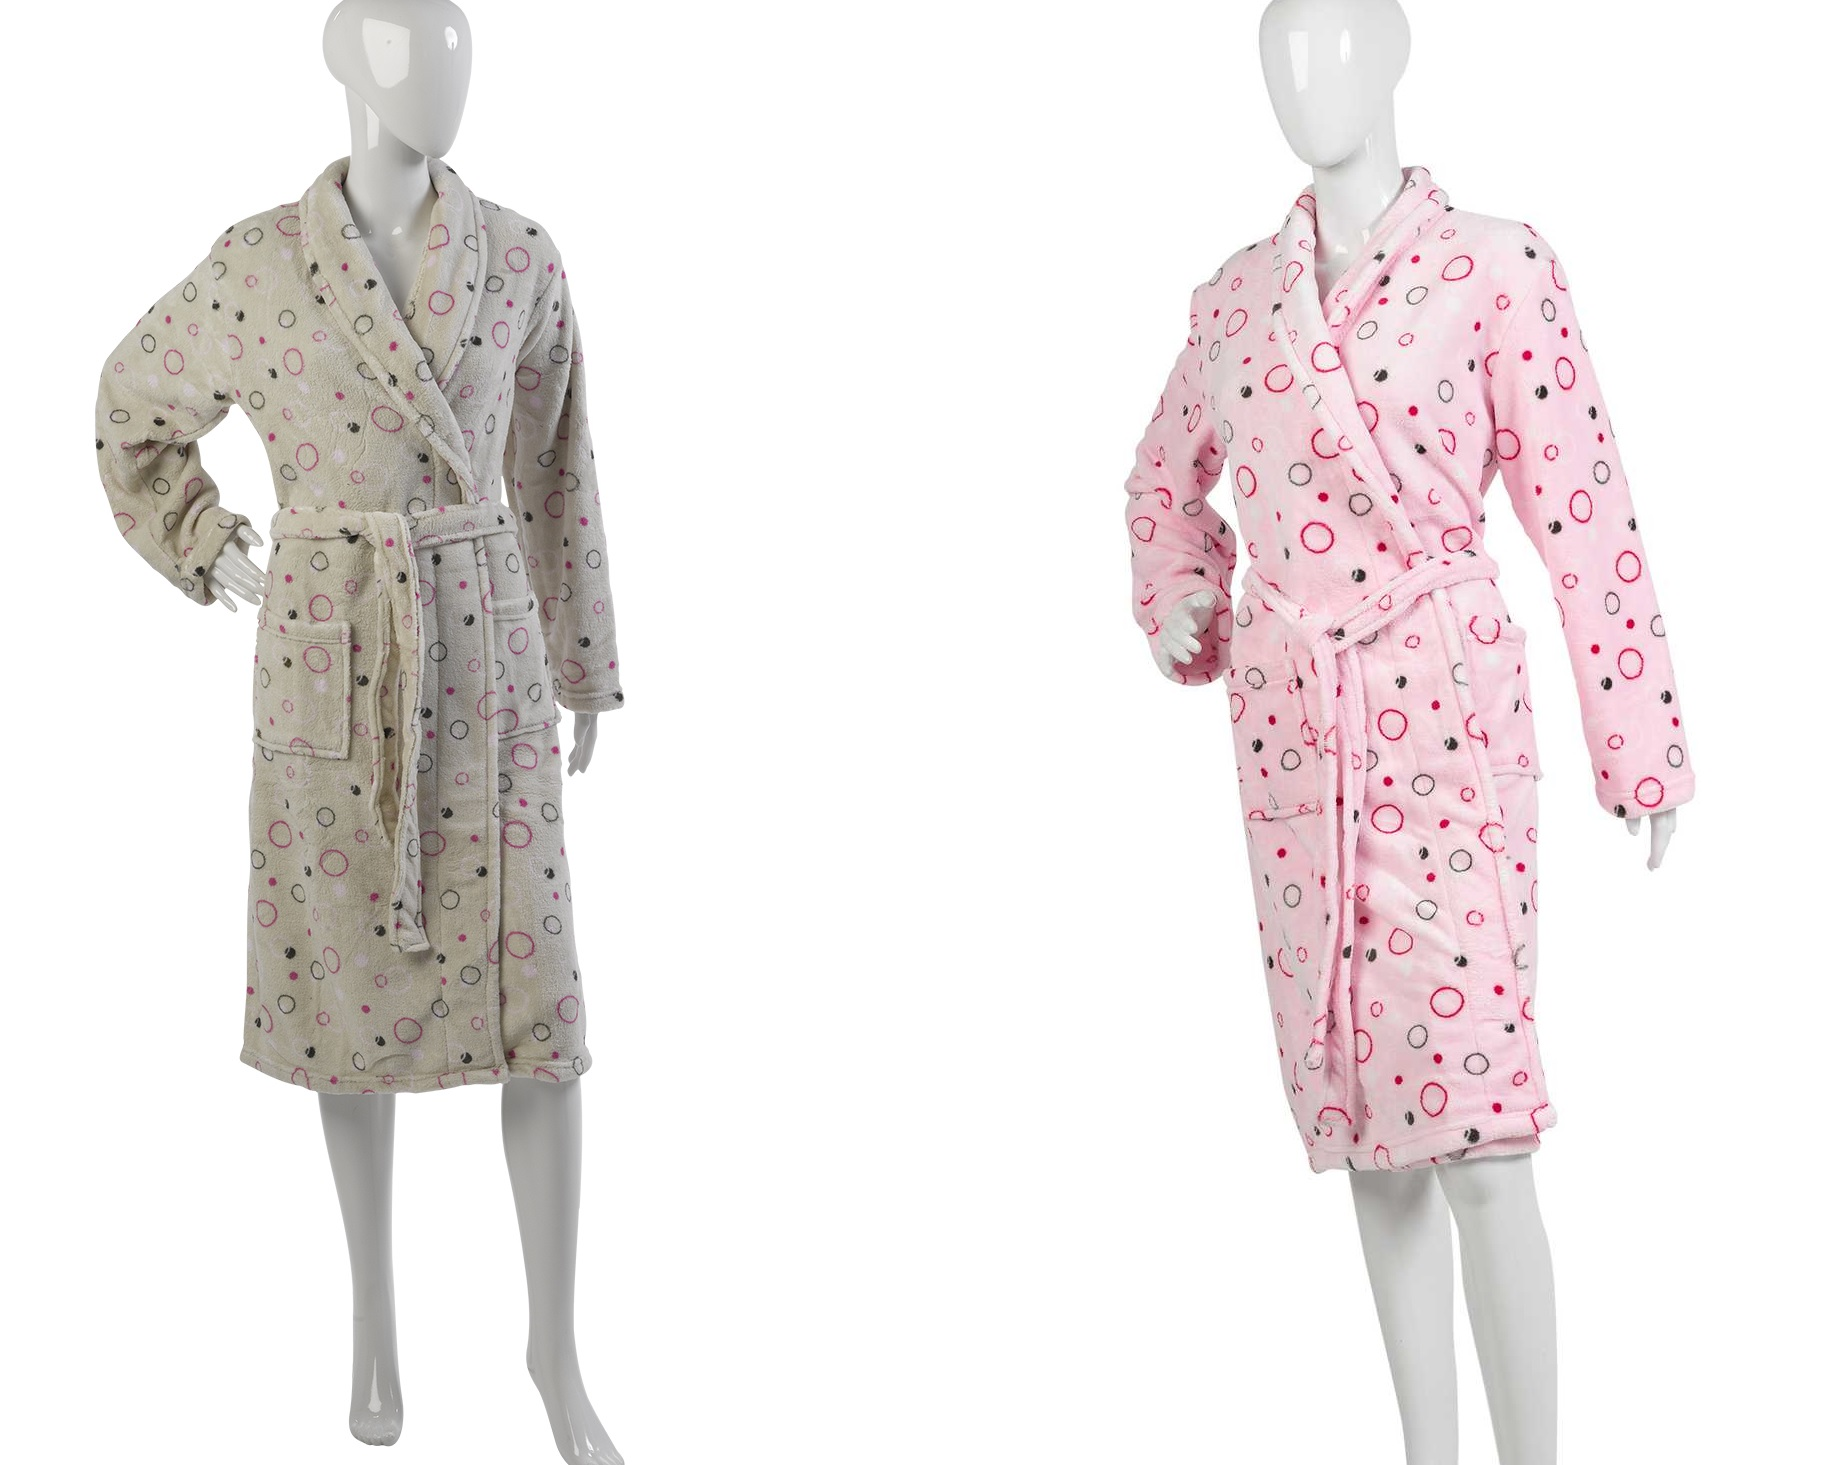 Details about Womens Spotty Dressing Gown Ladies Soft Polyester Coral  Fleece Circles Bath Robe e19f6c47a